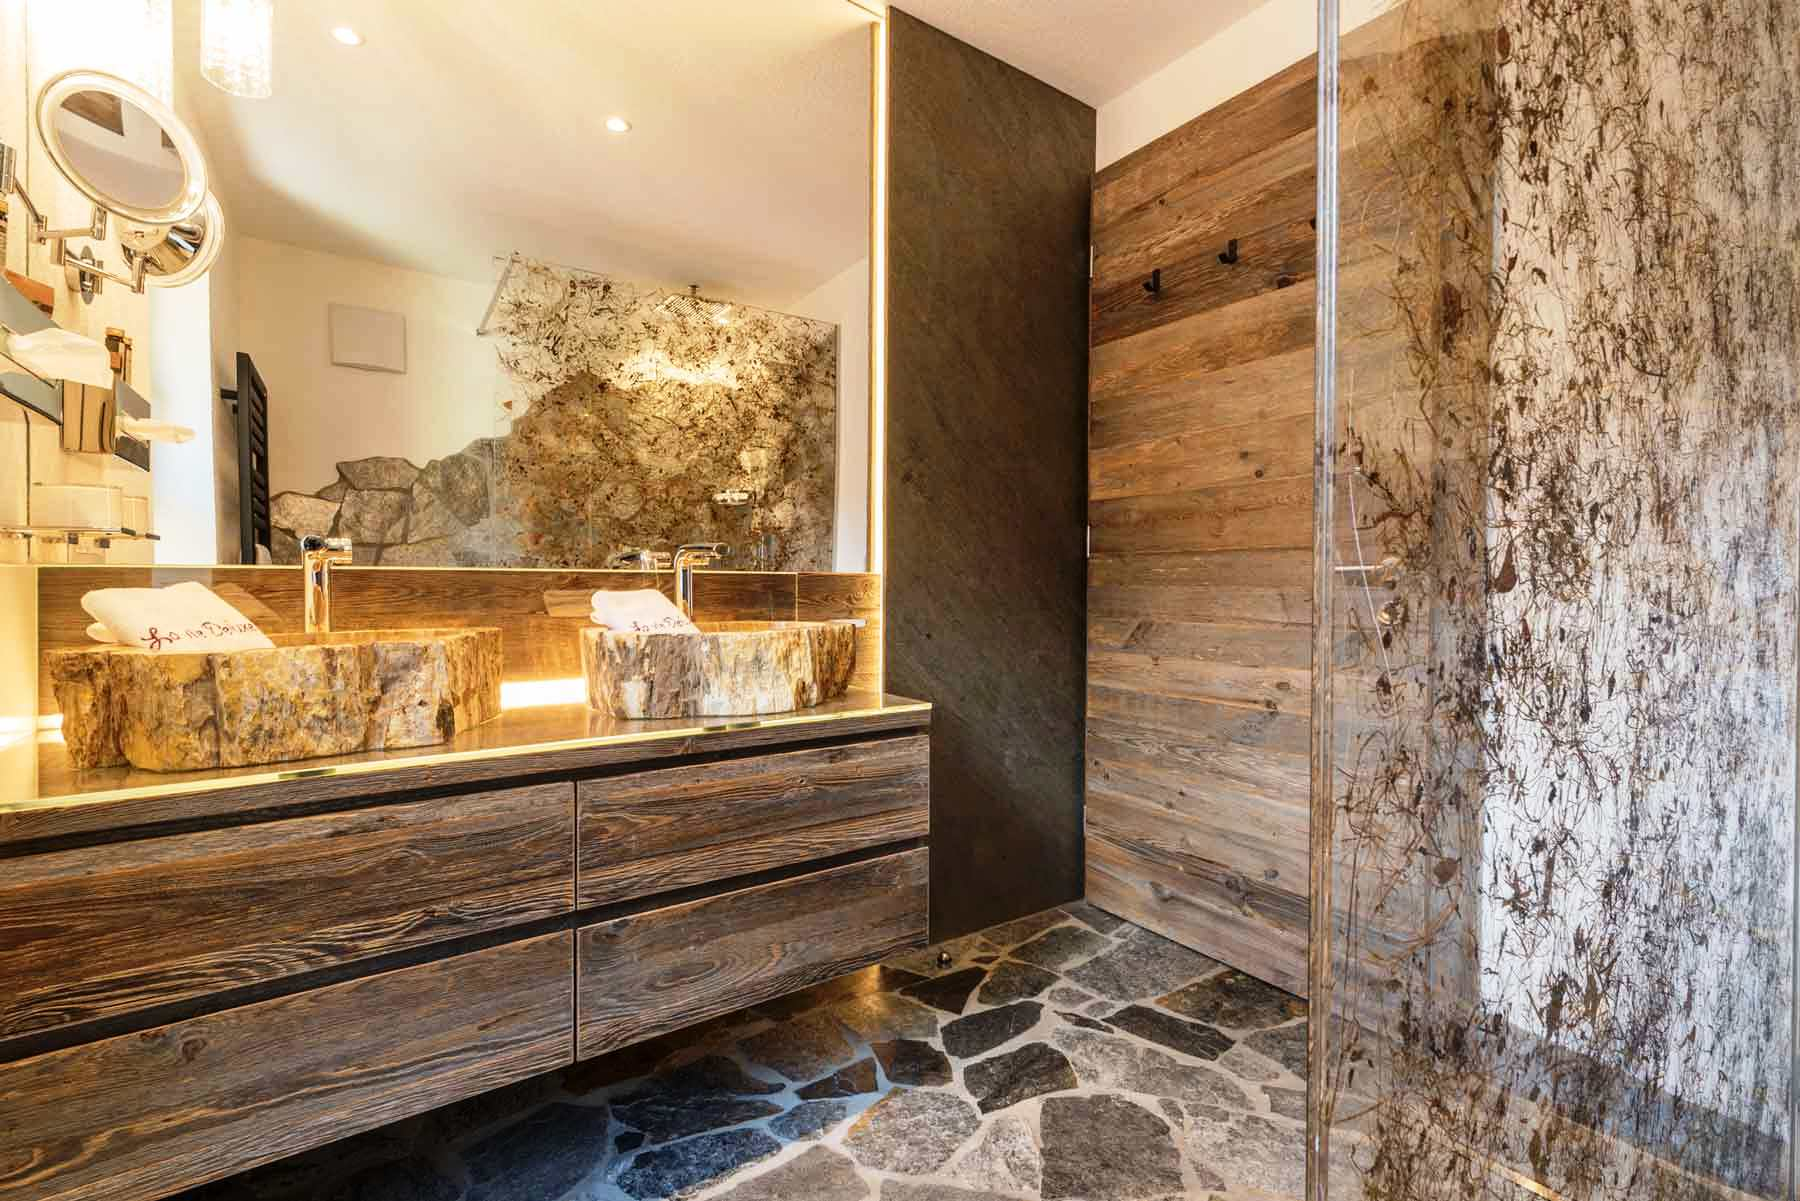 luxus ferienwohnung s dtirol mit sauna whirlpool home entertainment. Black Bedroom Furniture Sets. Home Design Ideas